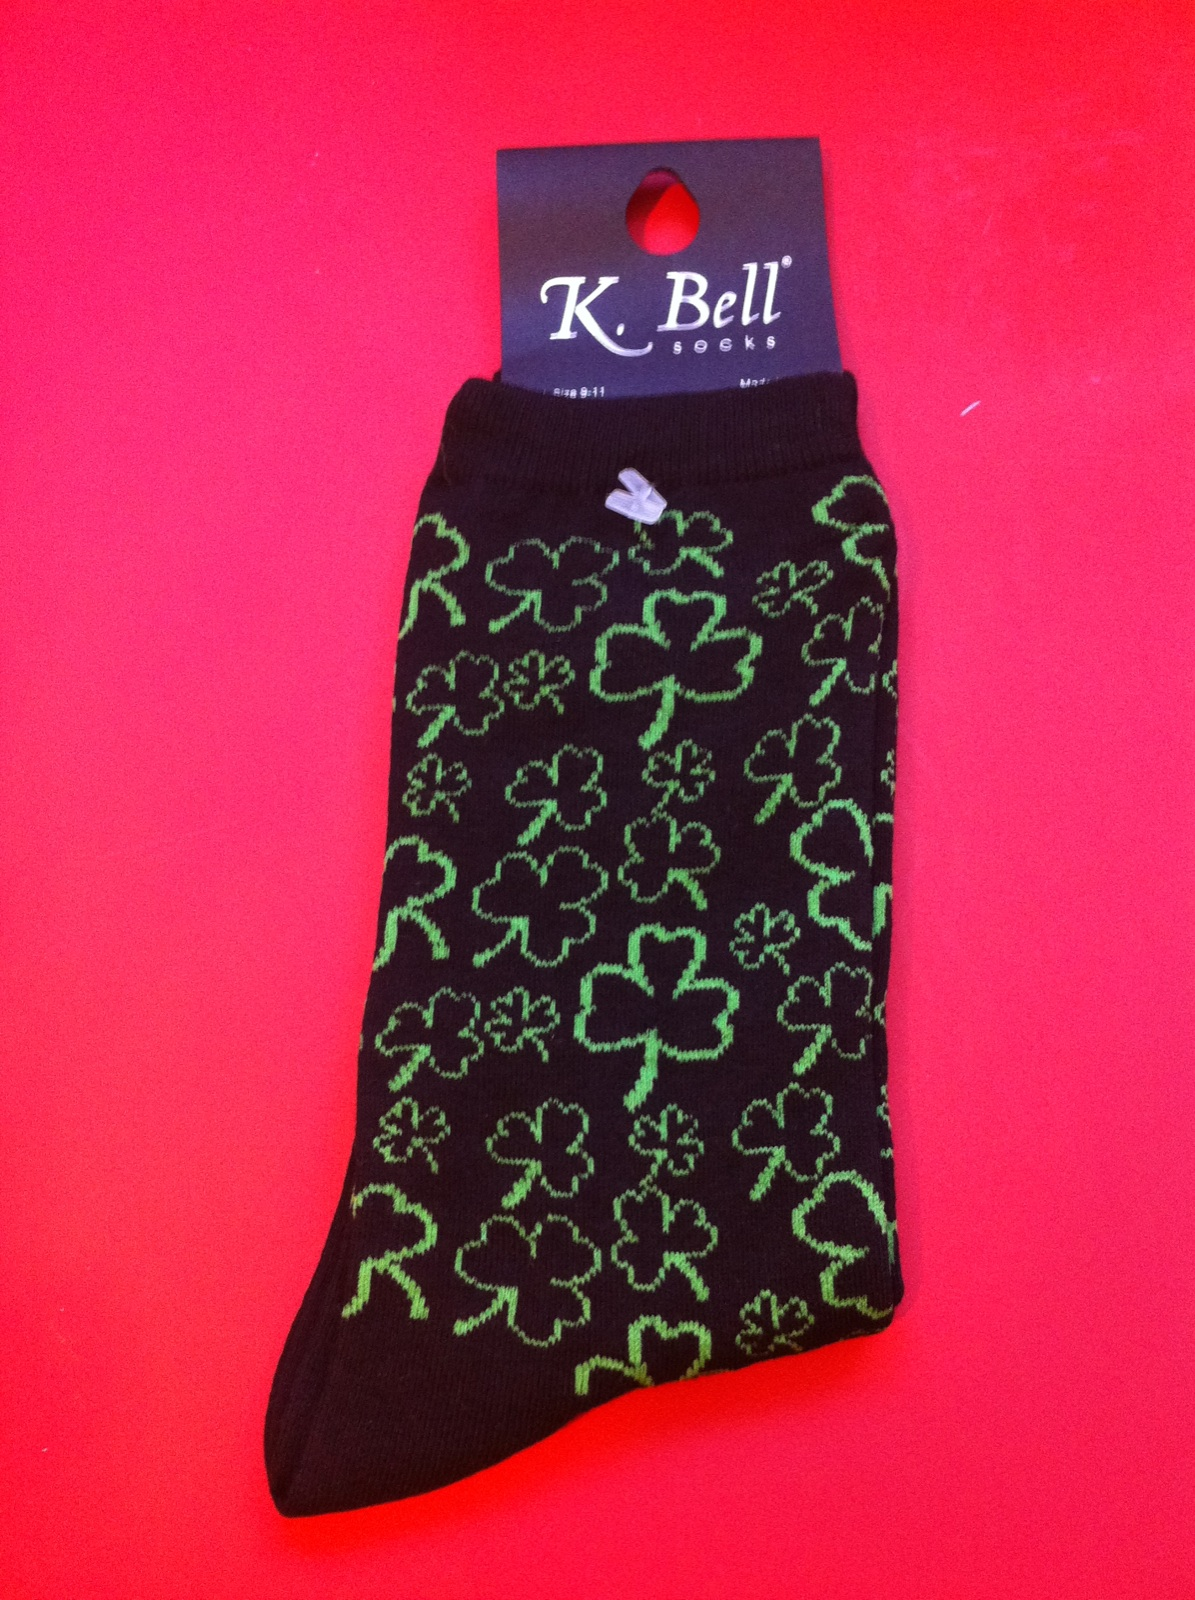 745b1c2d37bedf K Bell Socks 1456 Black Green Shamrock Outline on Black Ladies Socks   5.99 4.99 pair